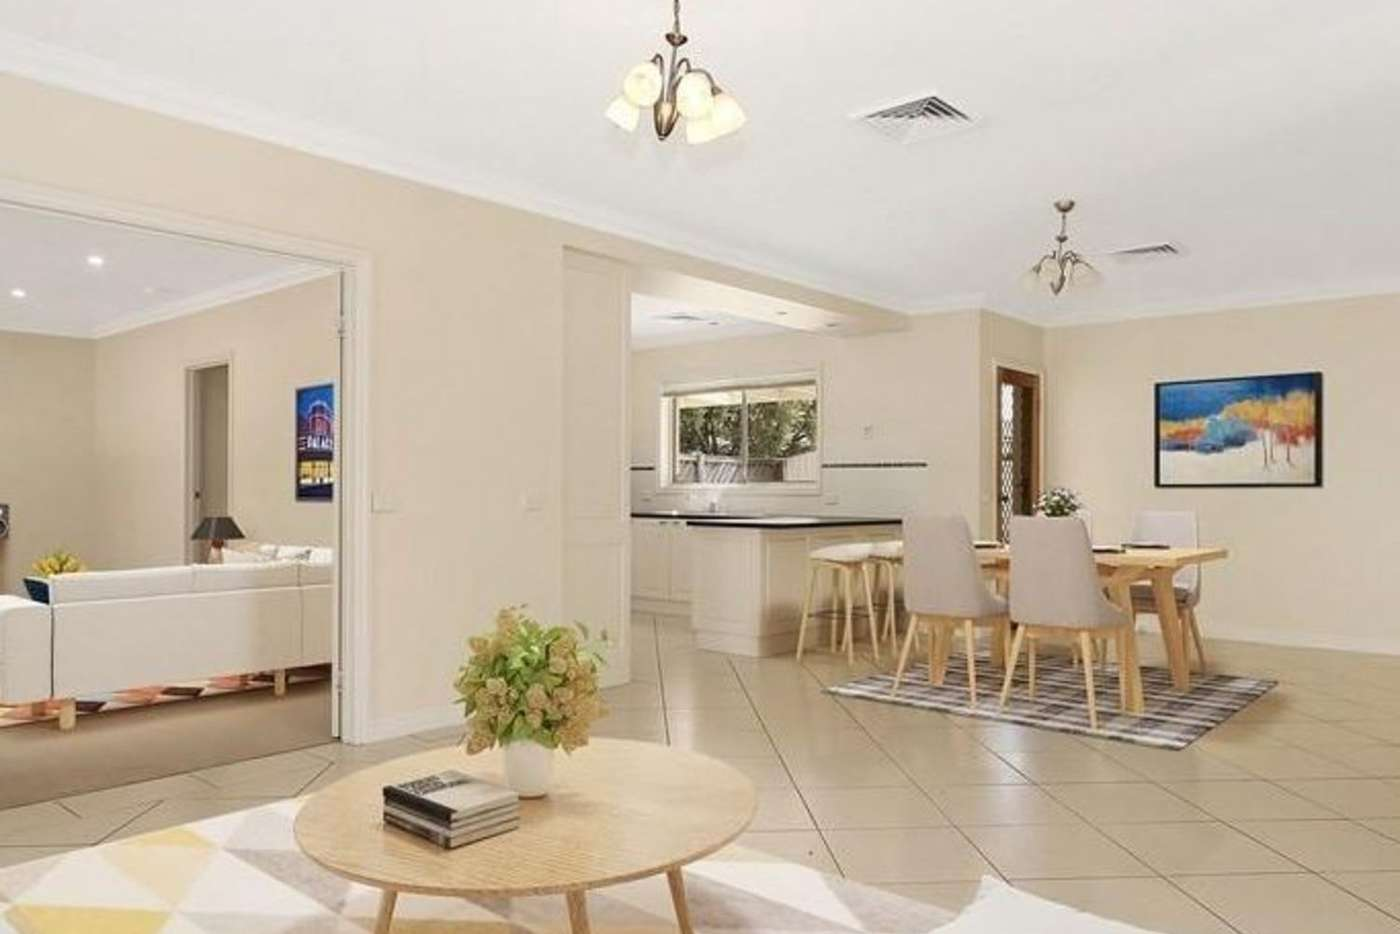 Fifth view of Homely house listing, 7 Cromer Fairway, Wodonga VIC 3690